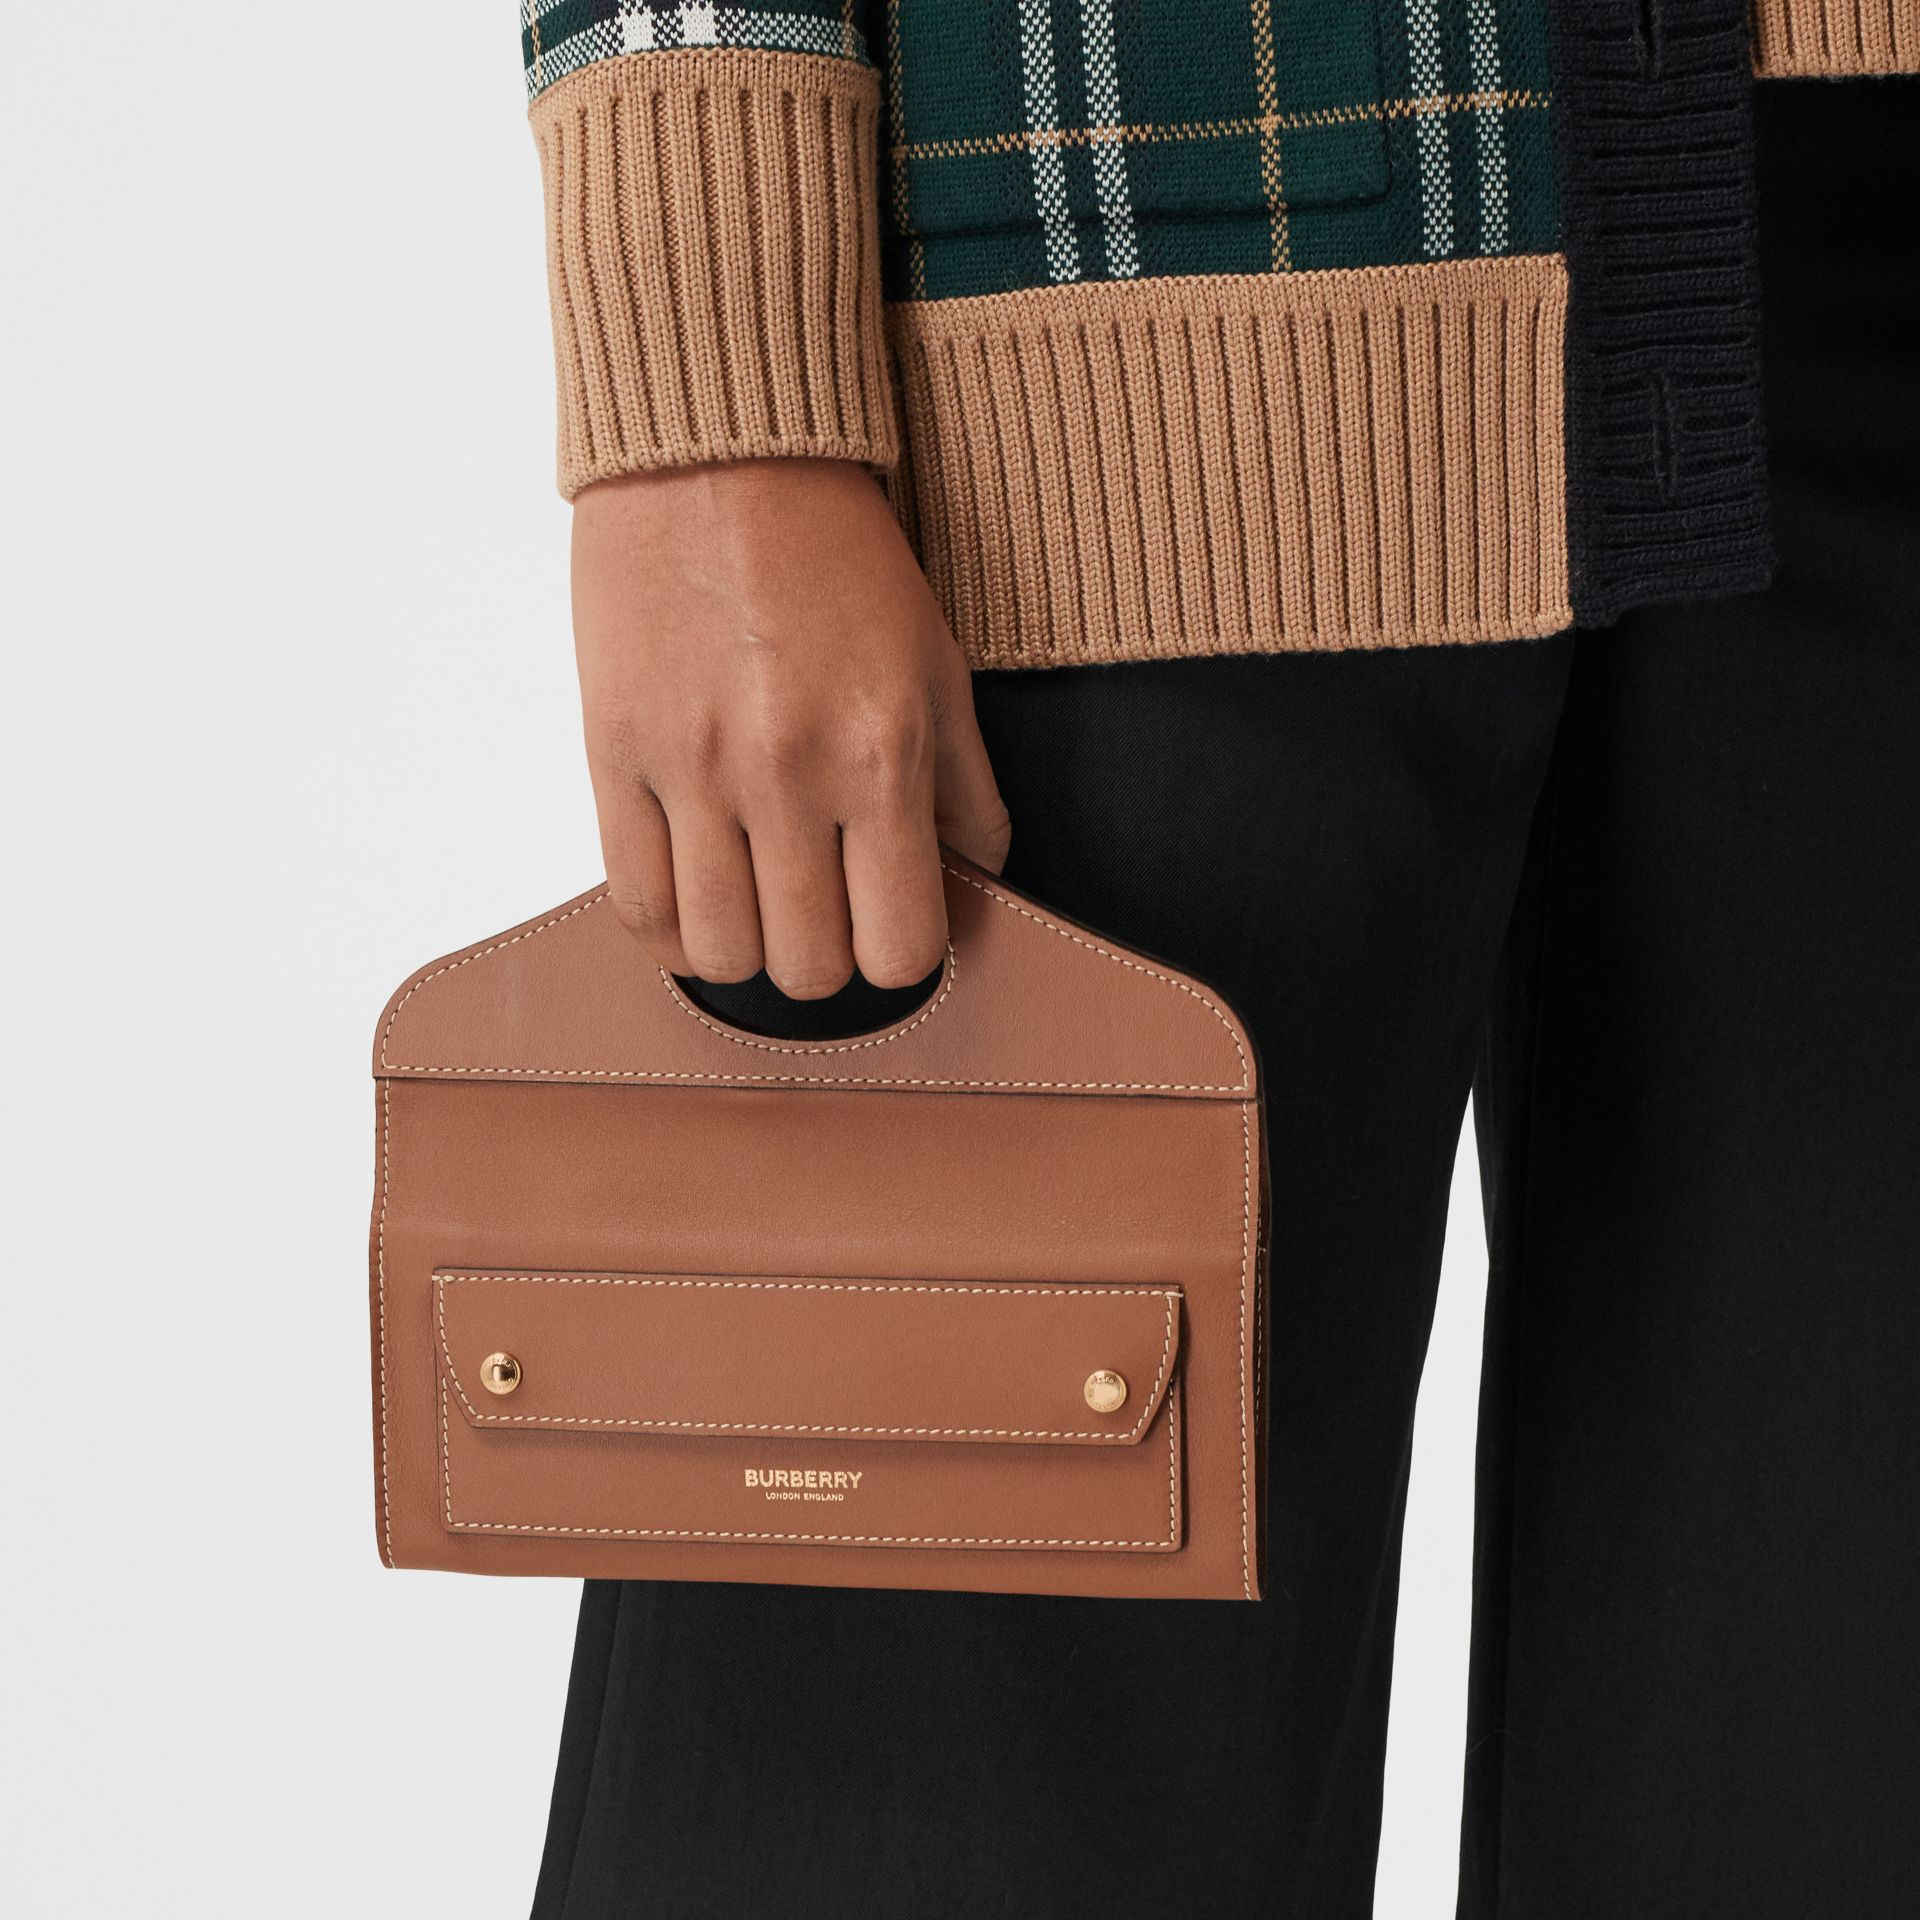 Mini Topstitched Lambskin Pocket Clutch in Malt Brown - Women | Burberry - gallery image 8